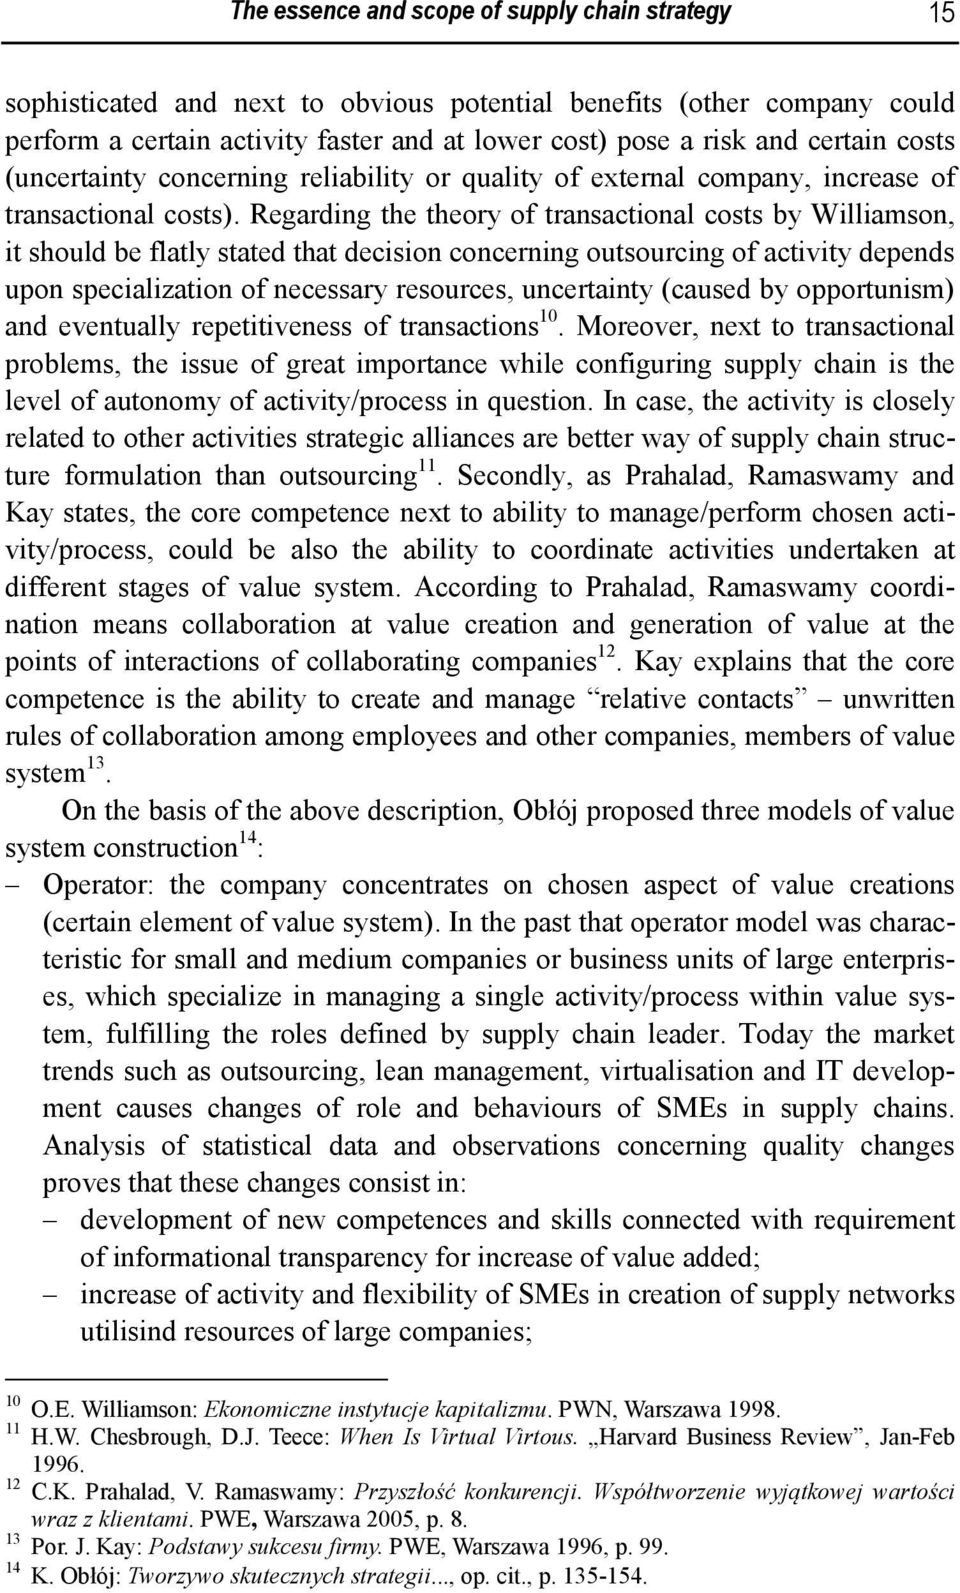 Regarding the theory of transactional costs by Williamson, it should be flatly stated that decision concerning outsourcing of activity depends upon specialization of necessary resources, uncertainty